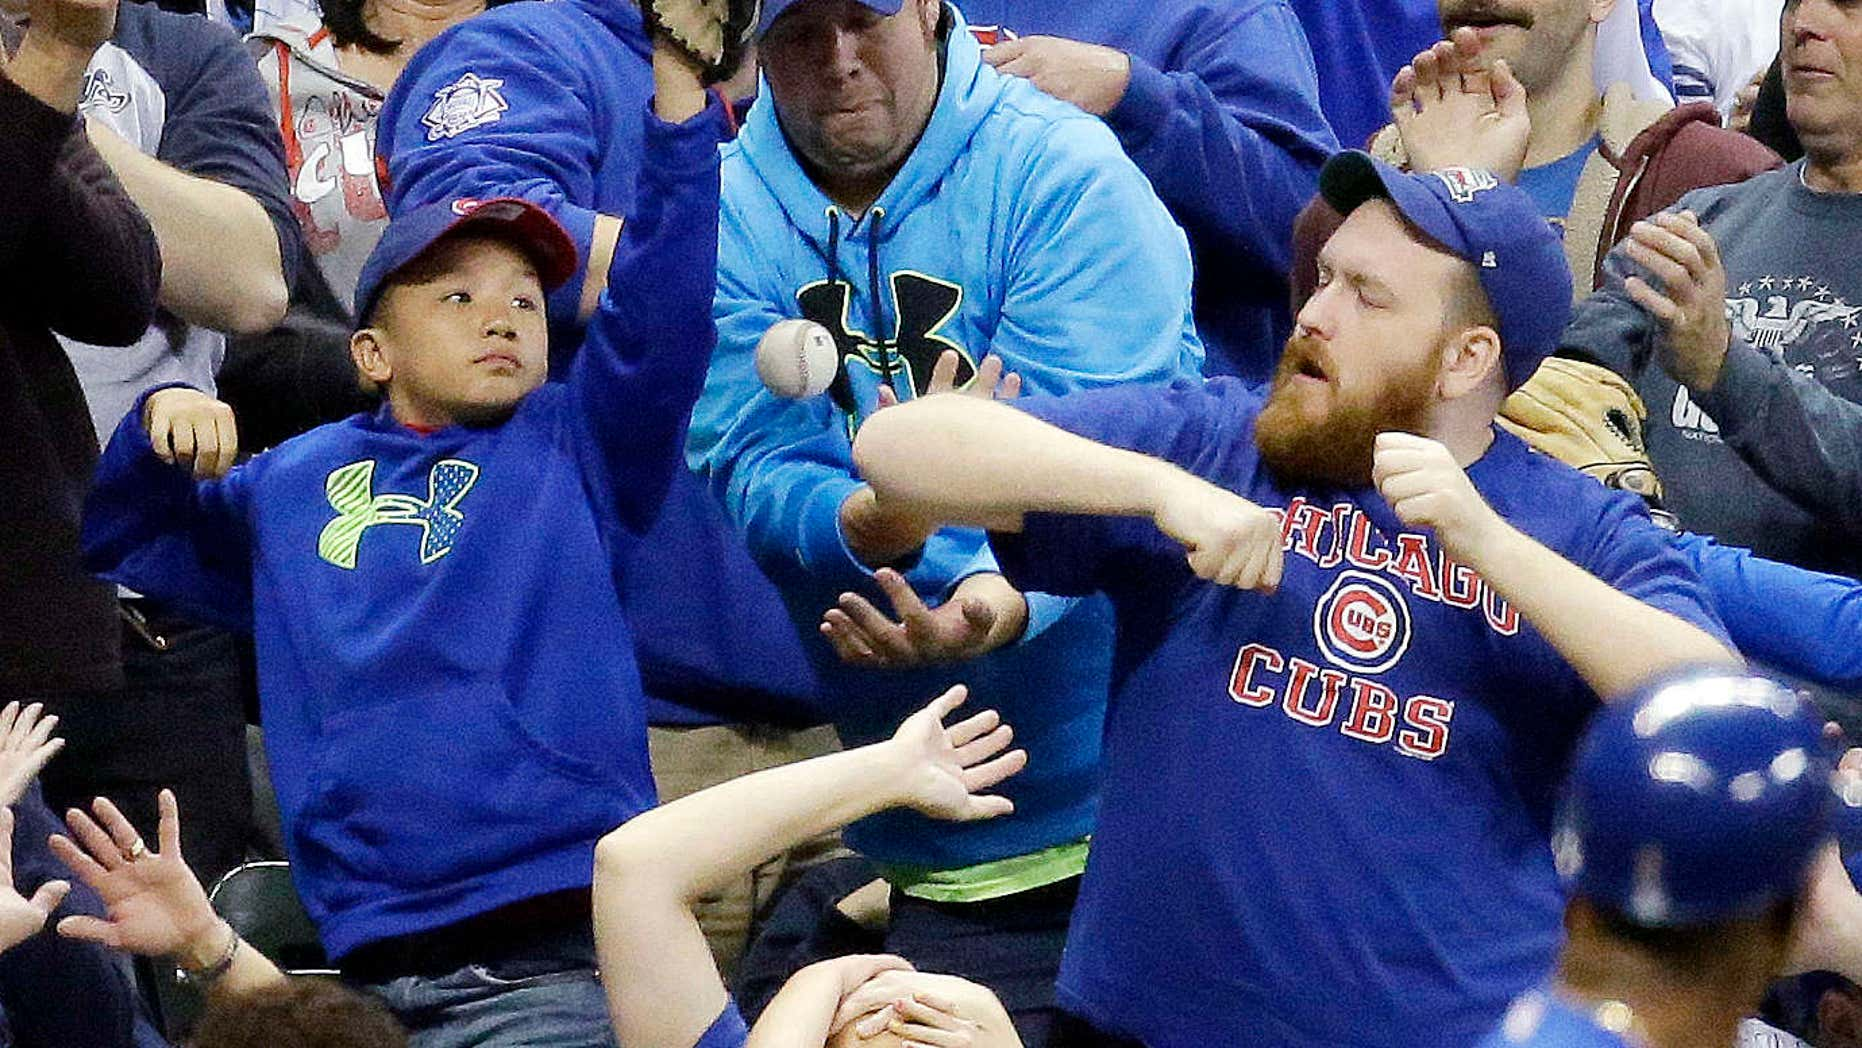 FILE - In this Oct. 2, 2015, file photo, fans go after a foul ball hit by Chicago Cubs' Dexter Fowler during the third inning of a baseball game against the Milwaukee Brewers, in Milwaukee.